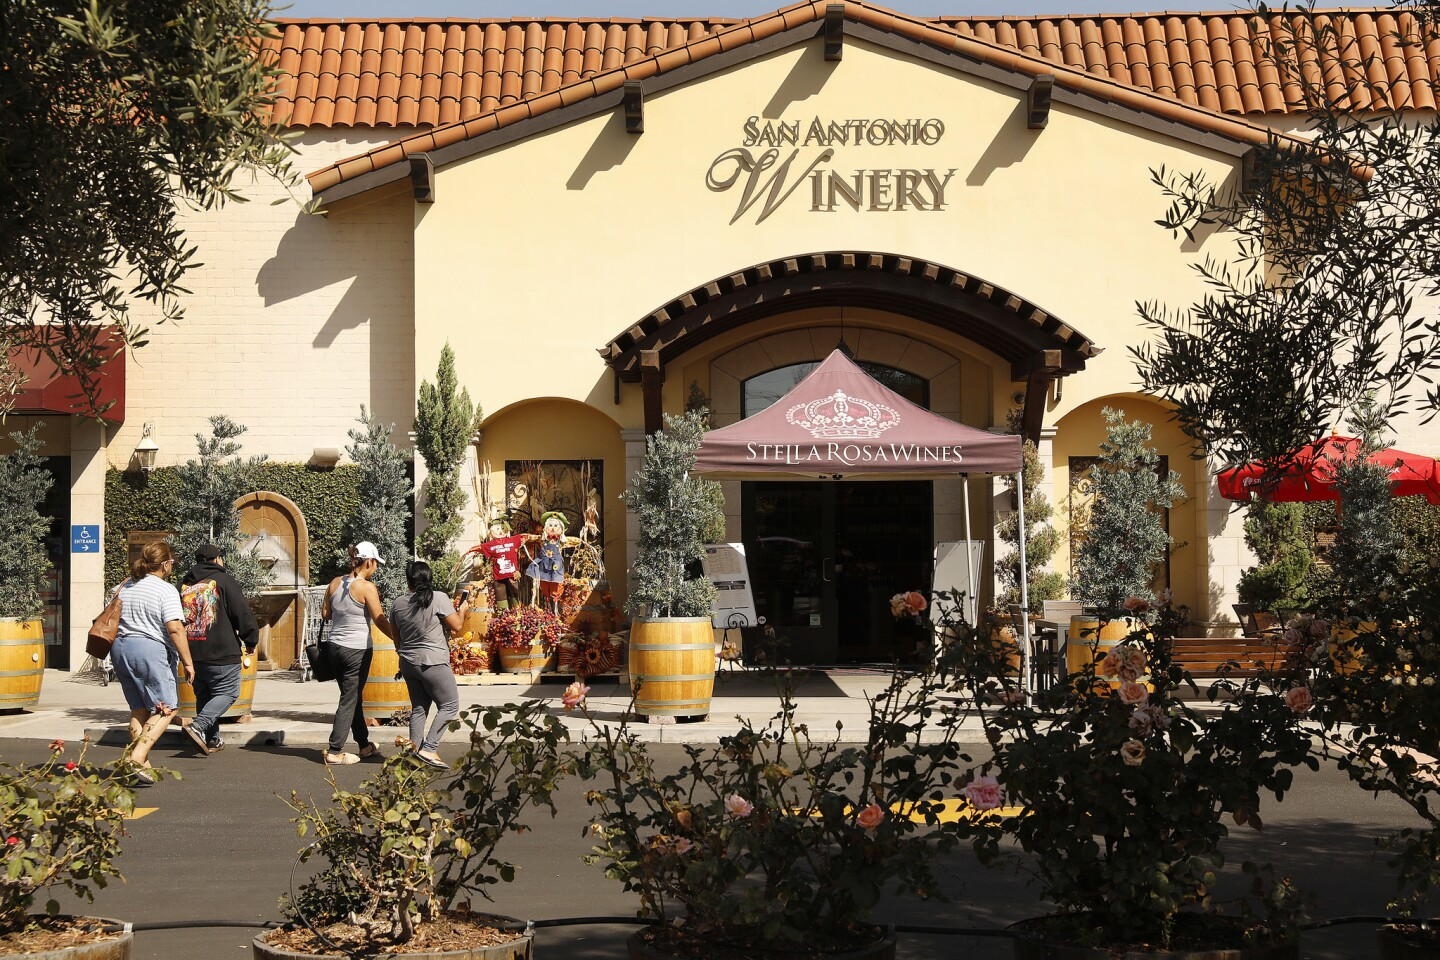 The entrance to the historic San Antonio Winery in Lincoln Heights near downtown Los Angeles.